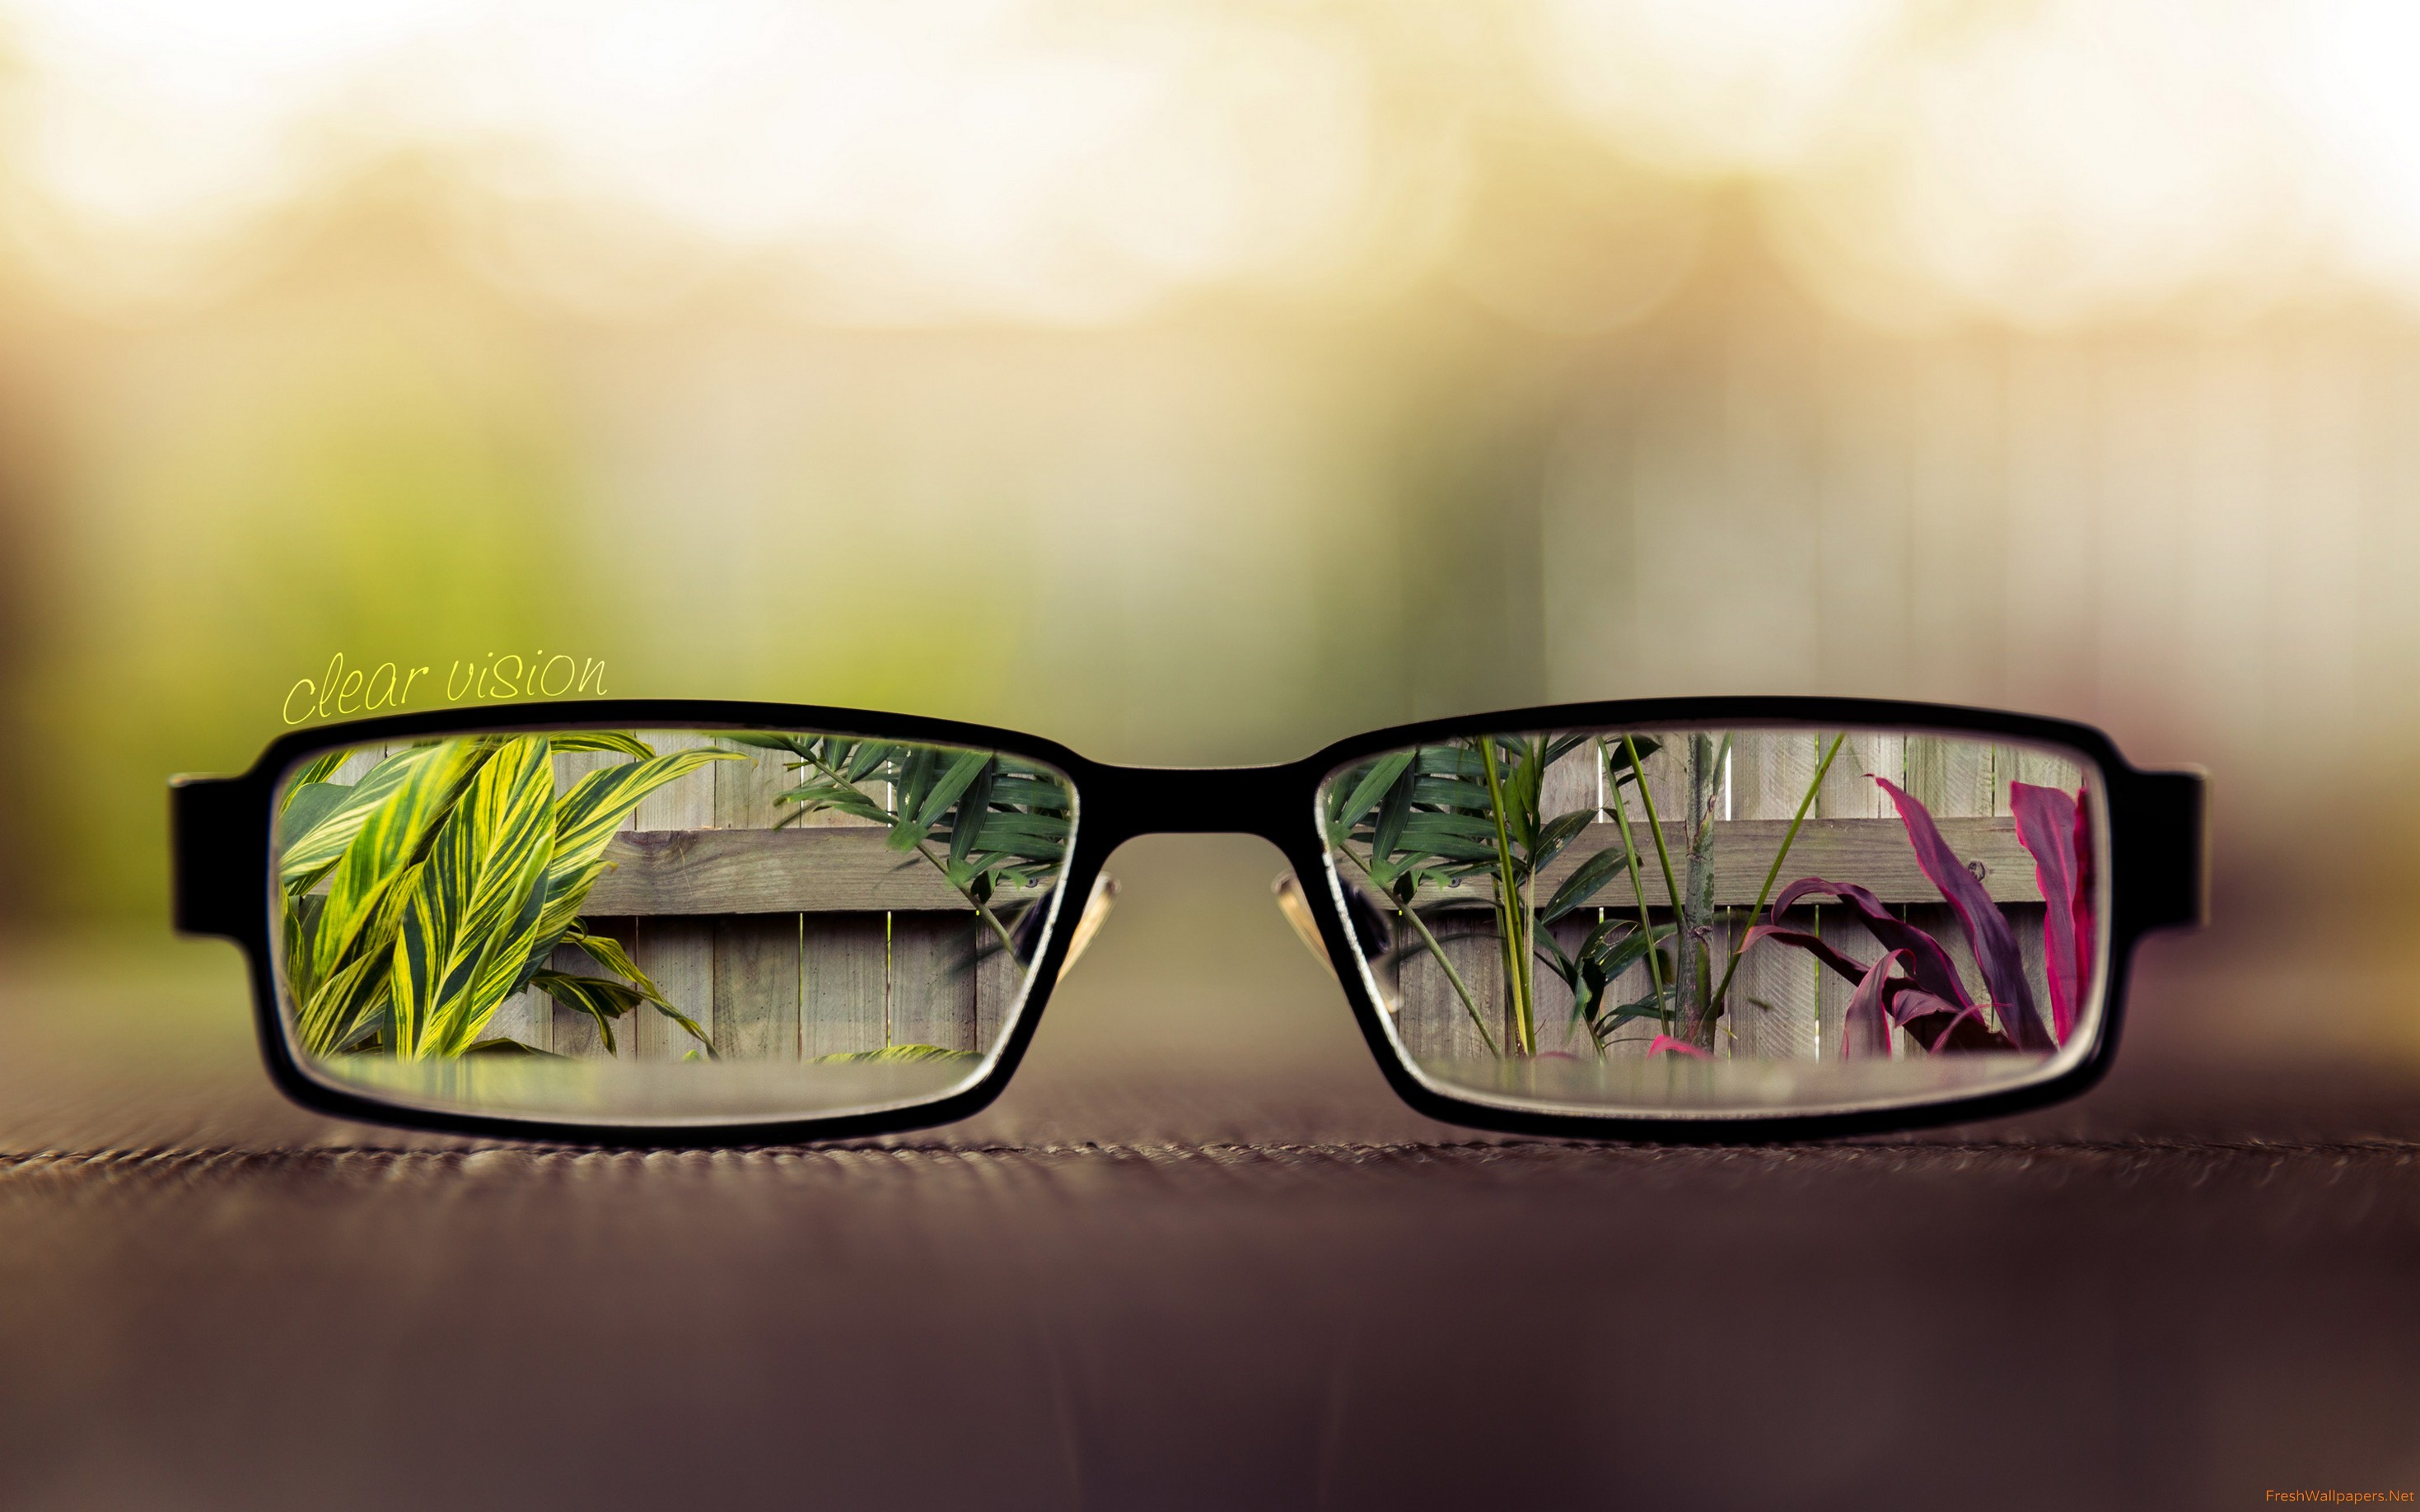 Clear Vision Eye Glasses wallpapers | Freshwallpapers